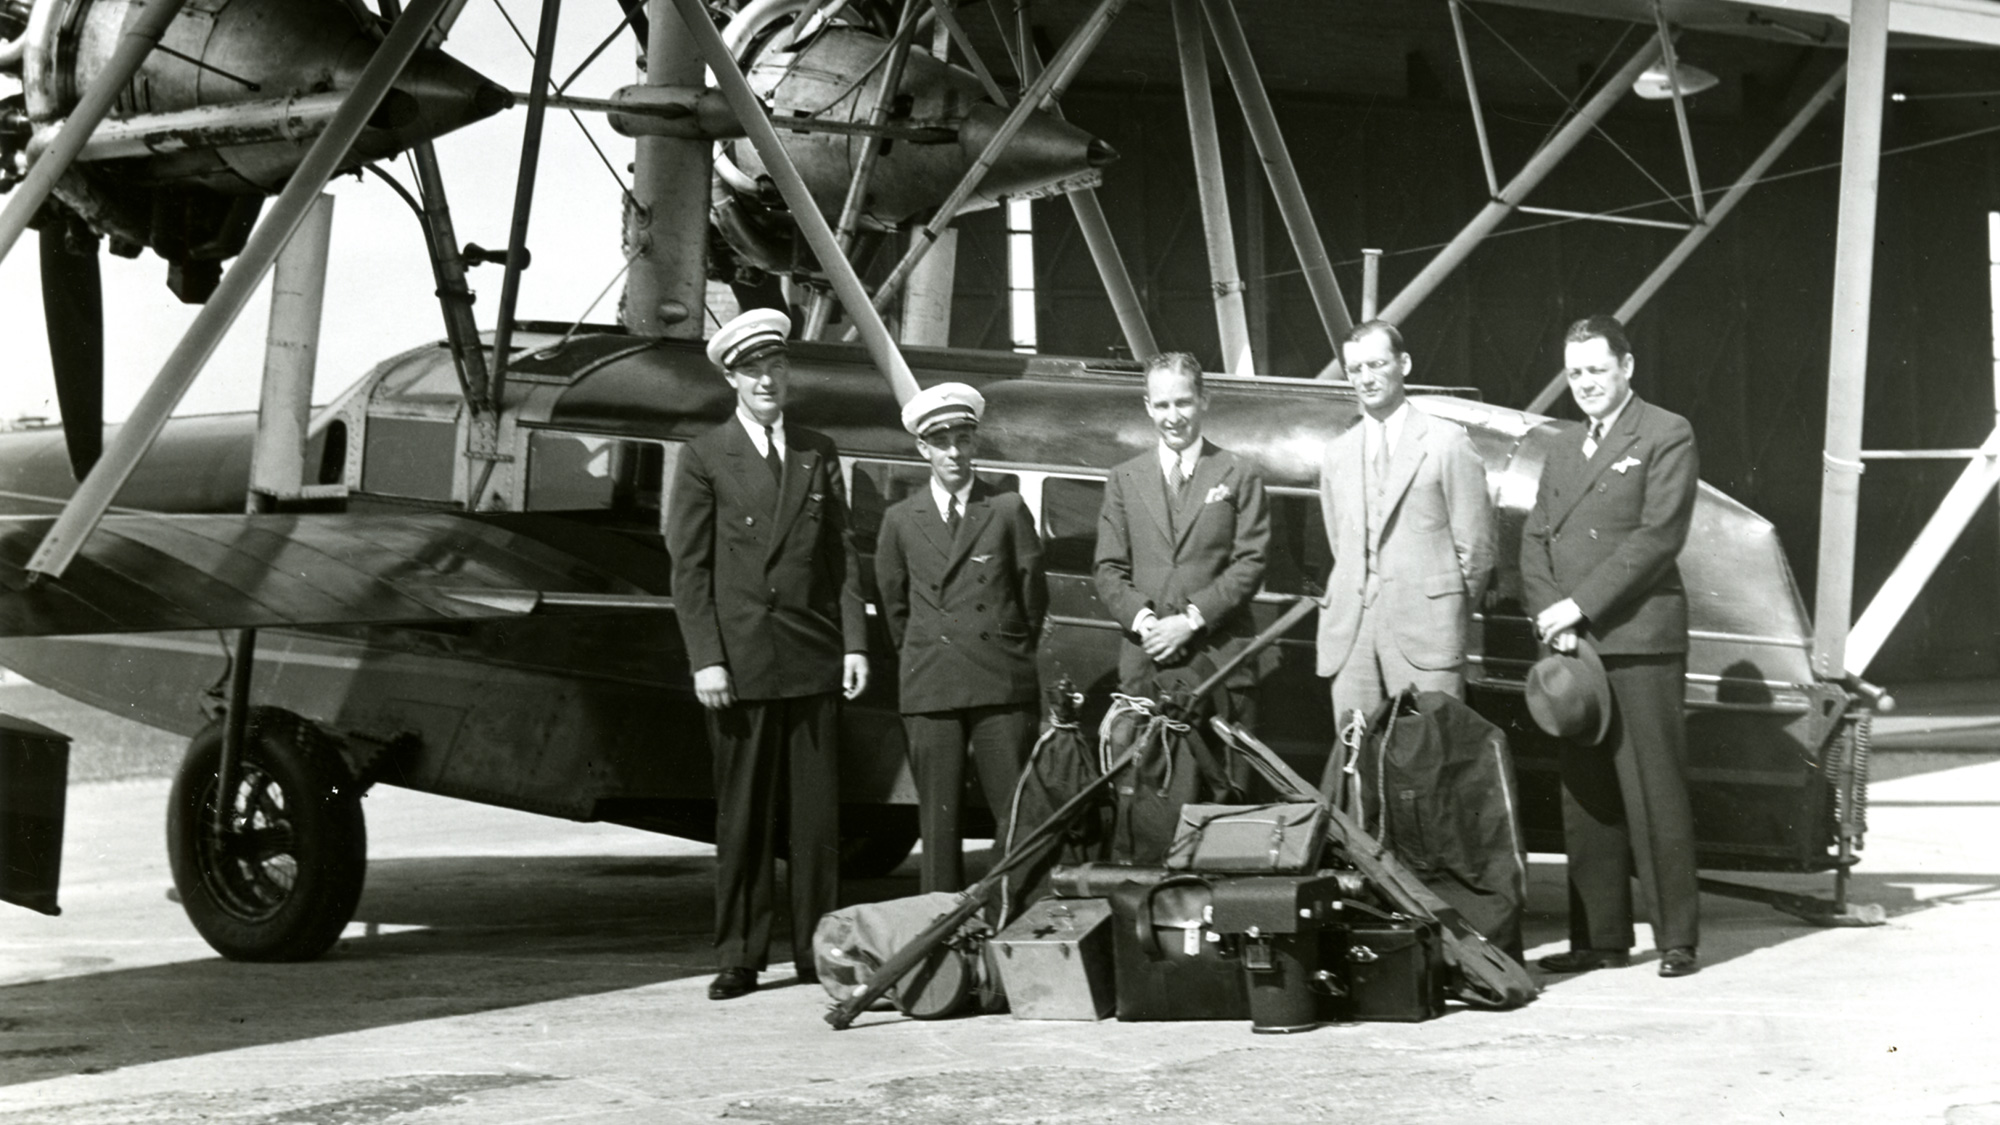 HF Johnson Jr and flight crew of the Carnauba Sikorsky S-38 amphibian airplane.